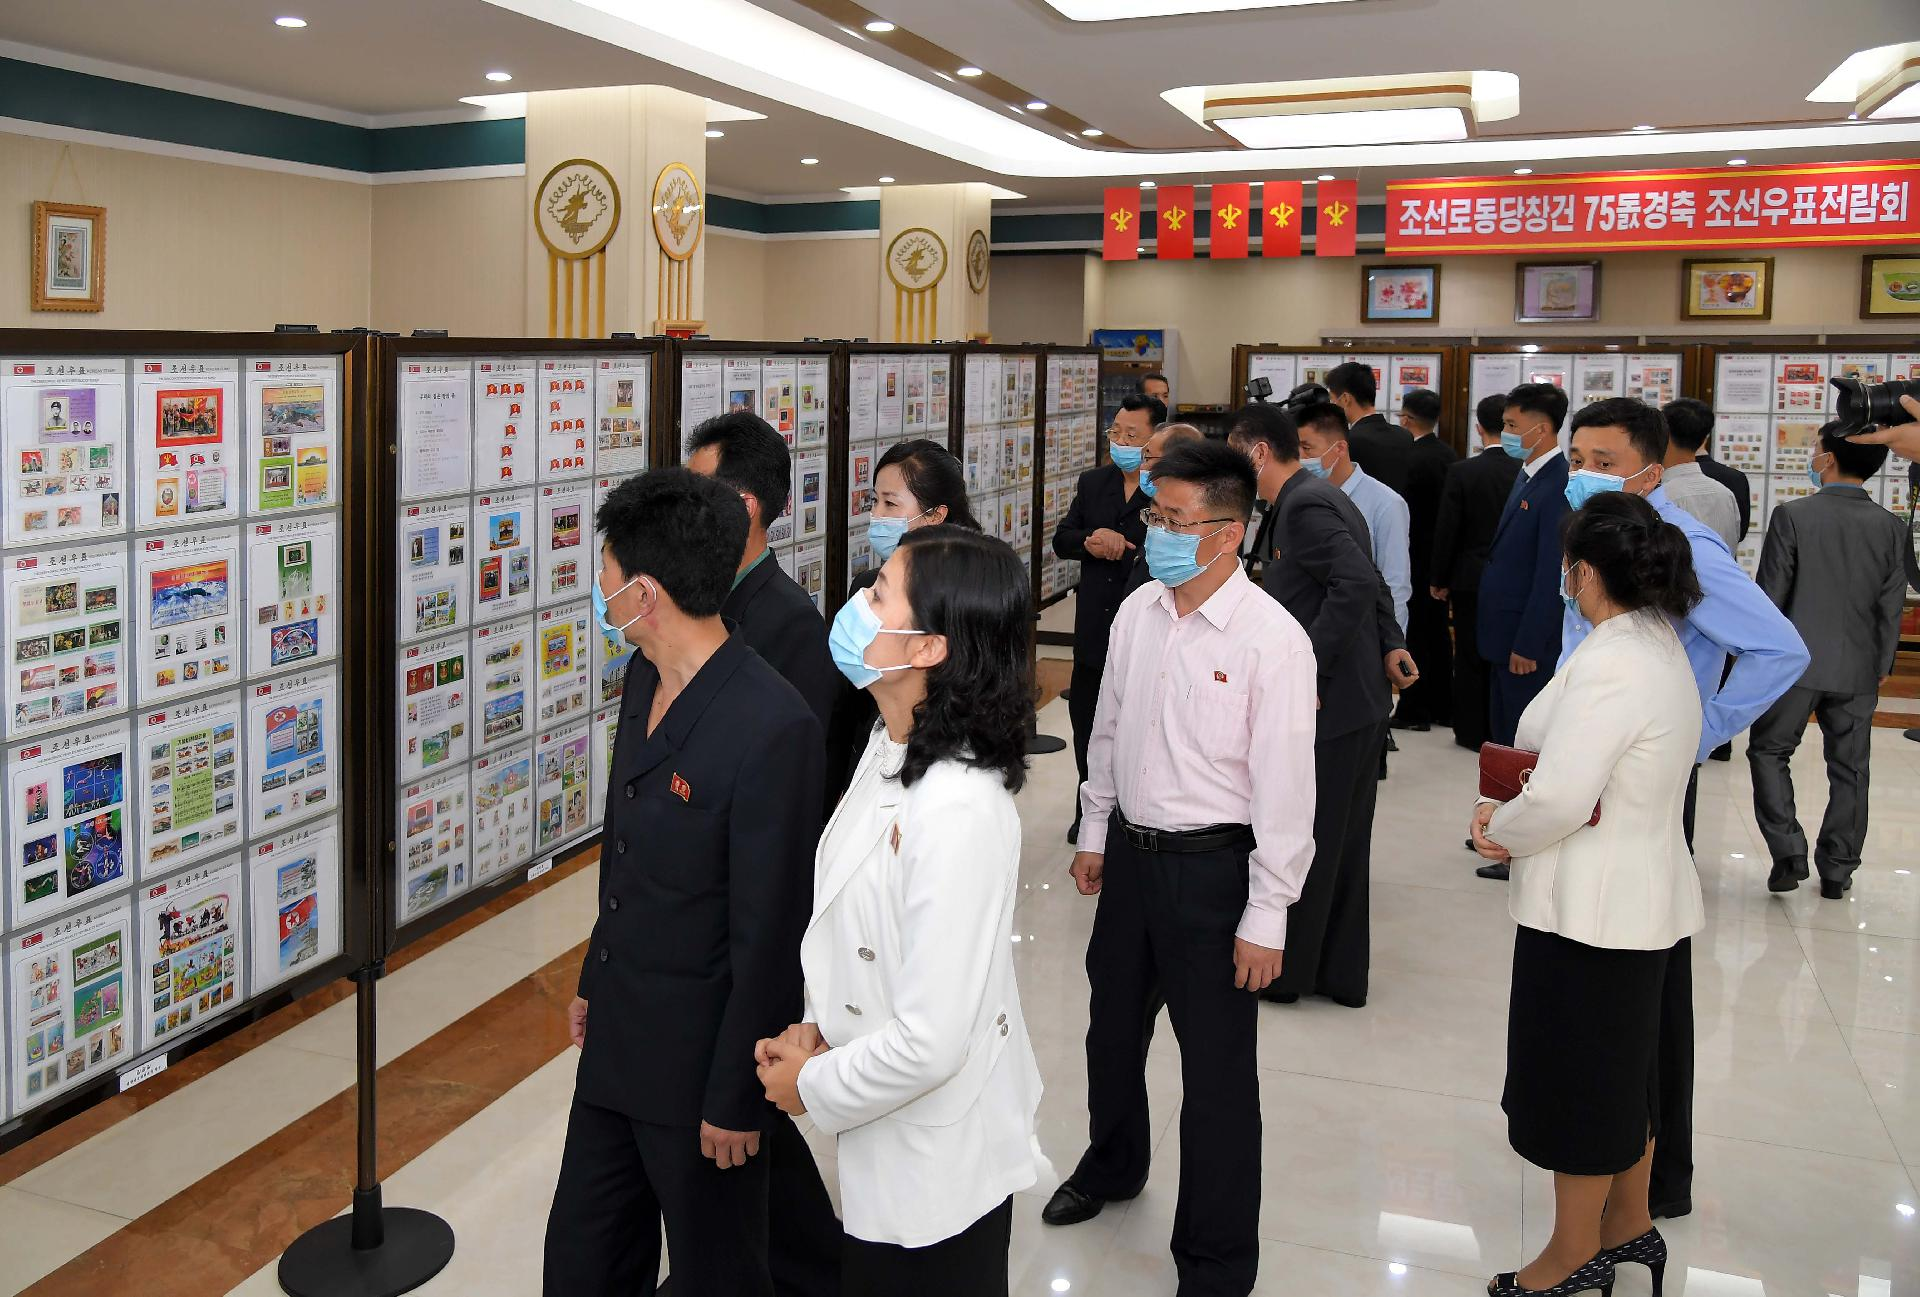 Korean stamp exhibition was opened in celebration for the 75th anniversary of the WPK